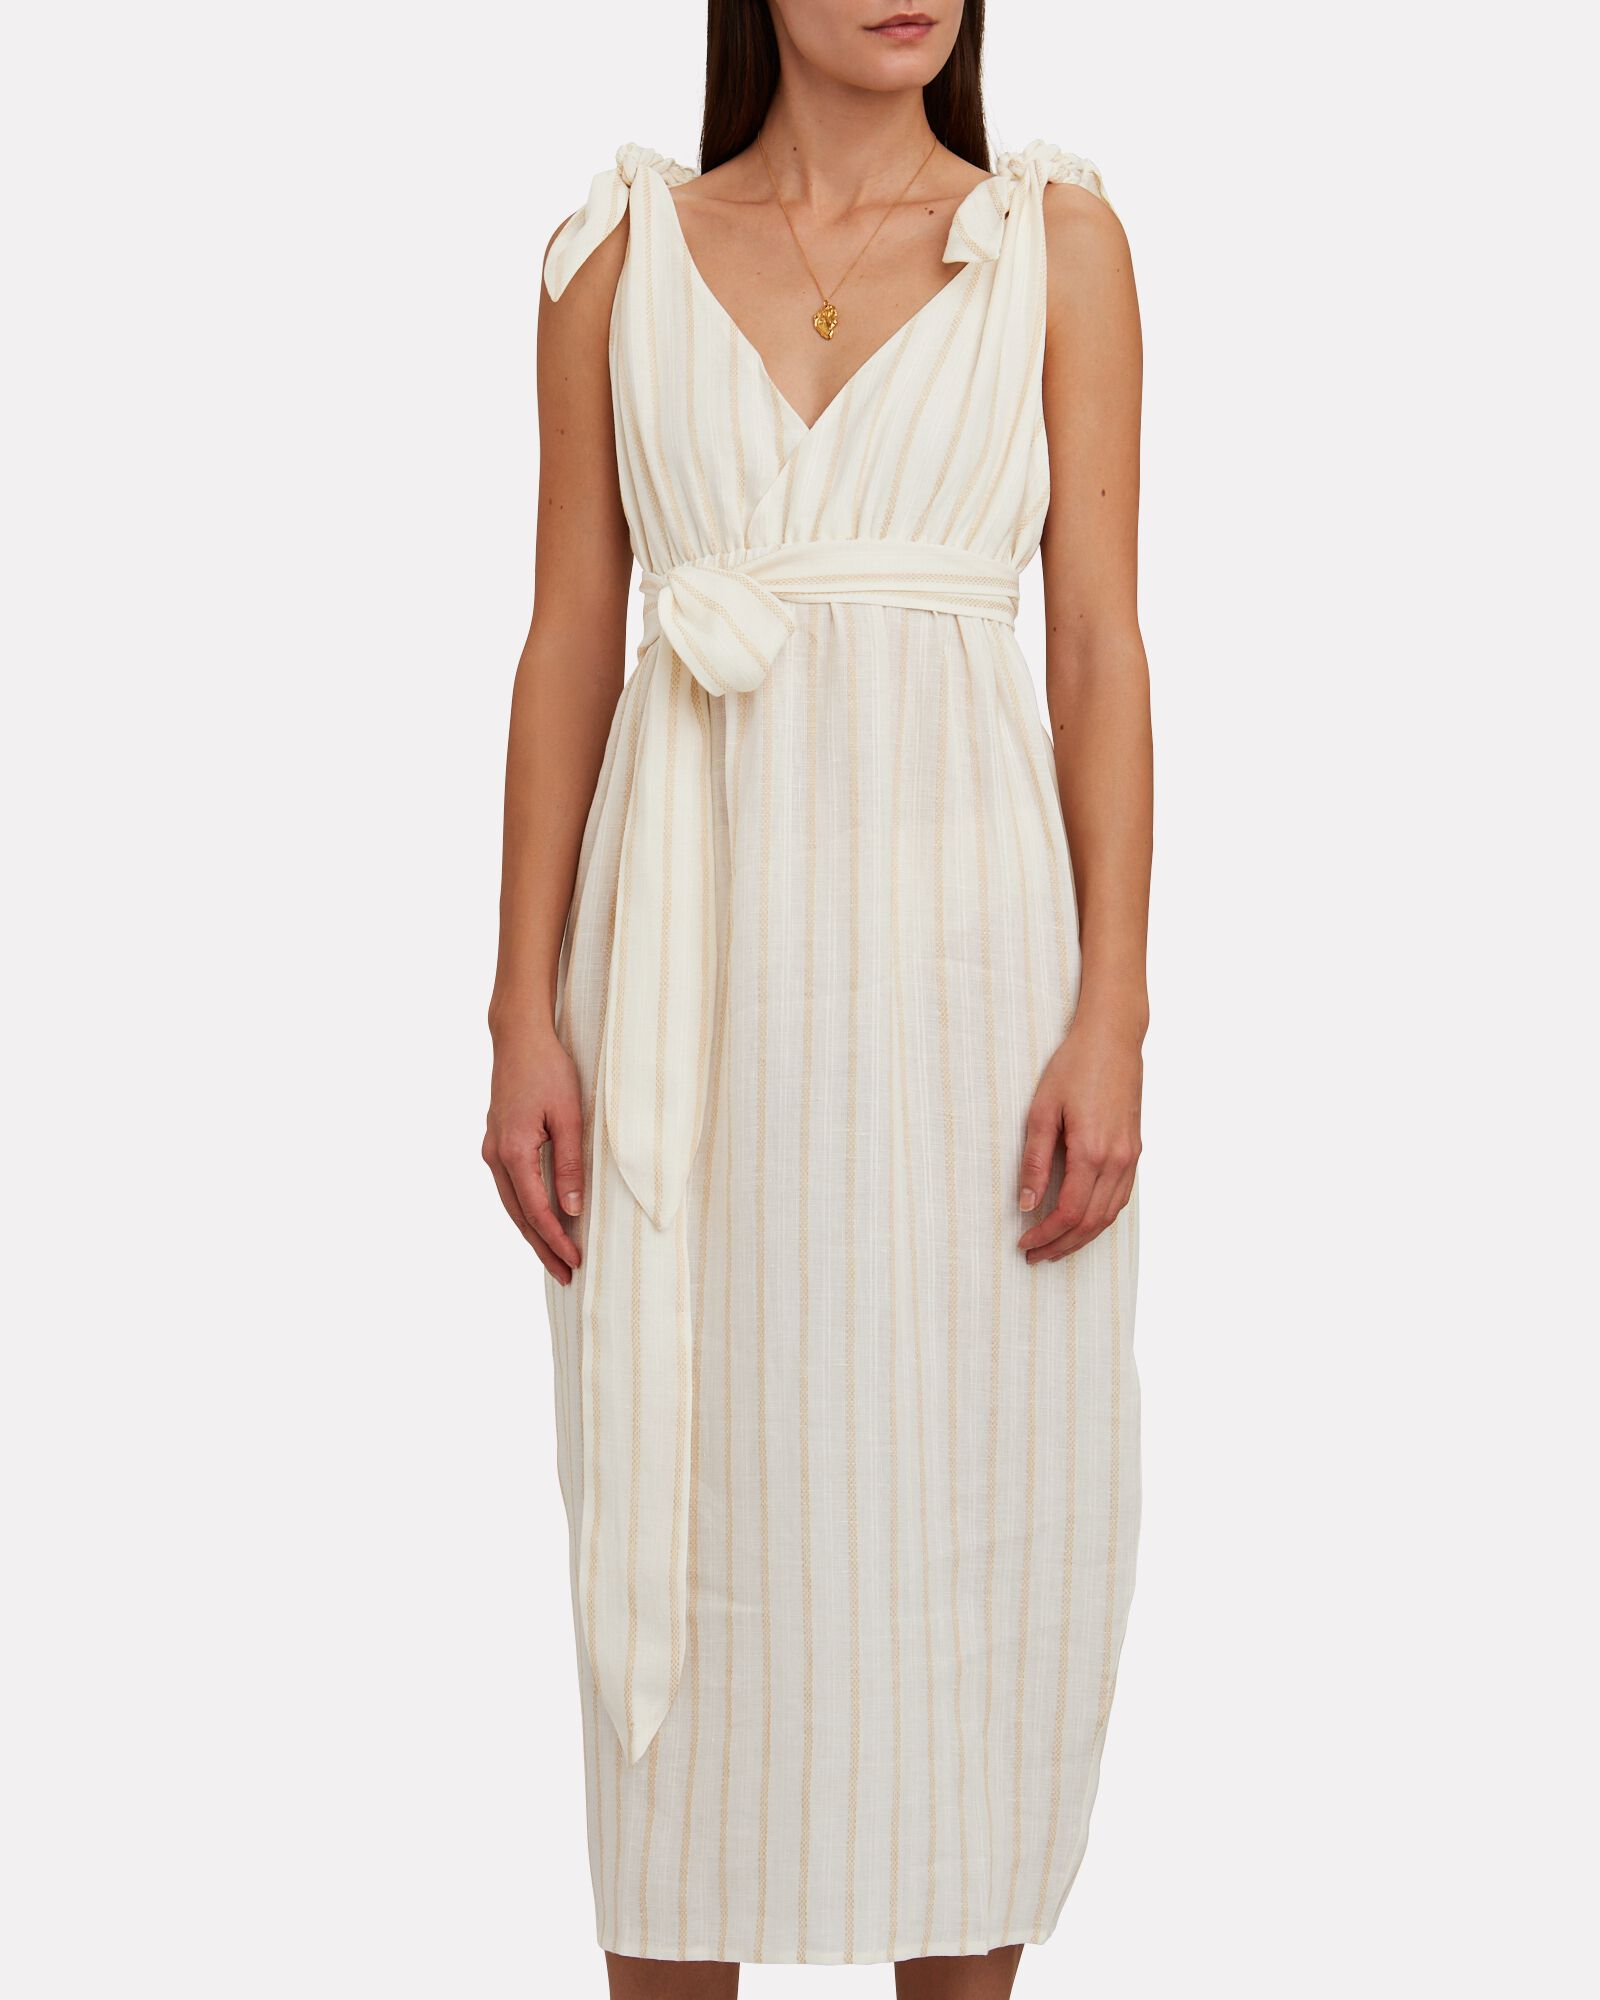 Calypso Twisted Stripe Midi Dress, WHITE/BEIGE, hi-res